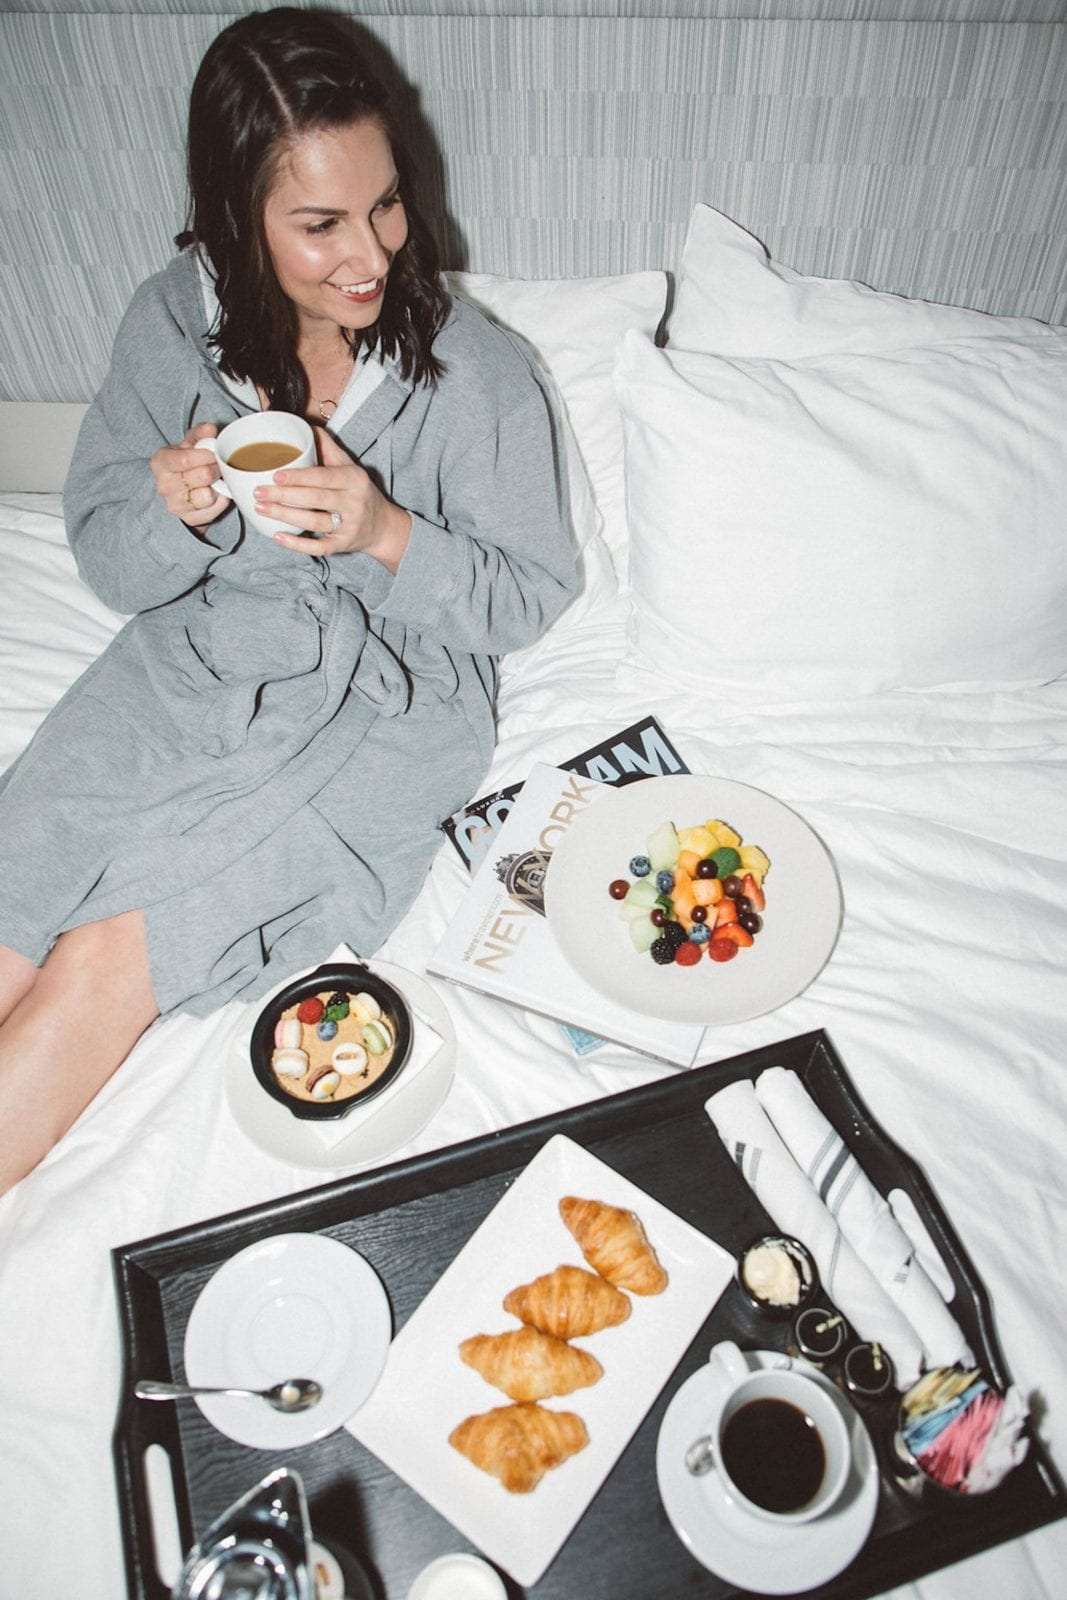 Eating Breakfast in Bed at The Innside by Melia in New York City.